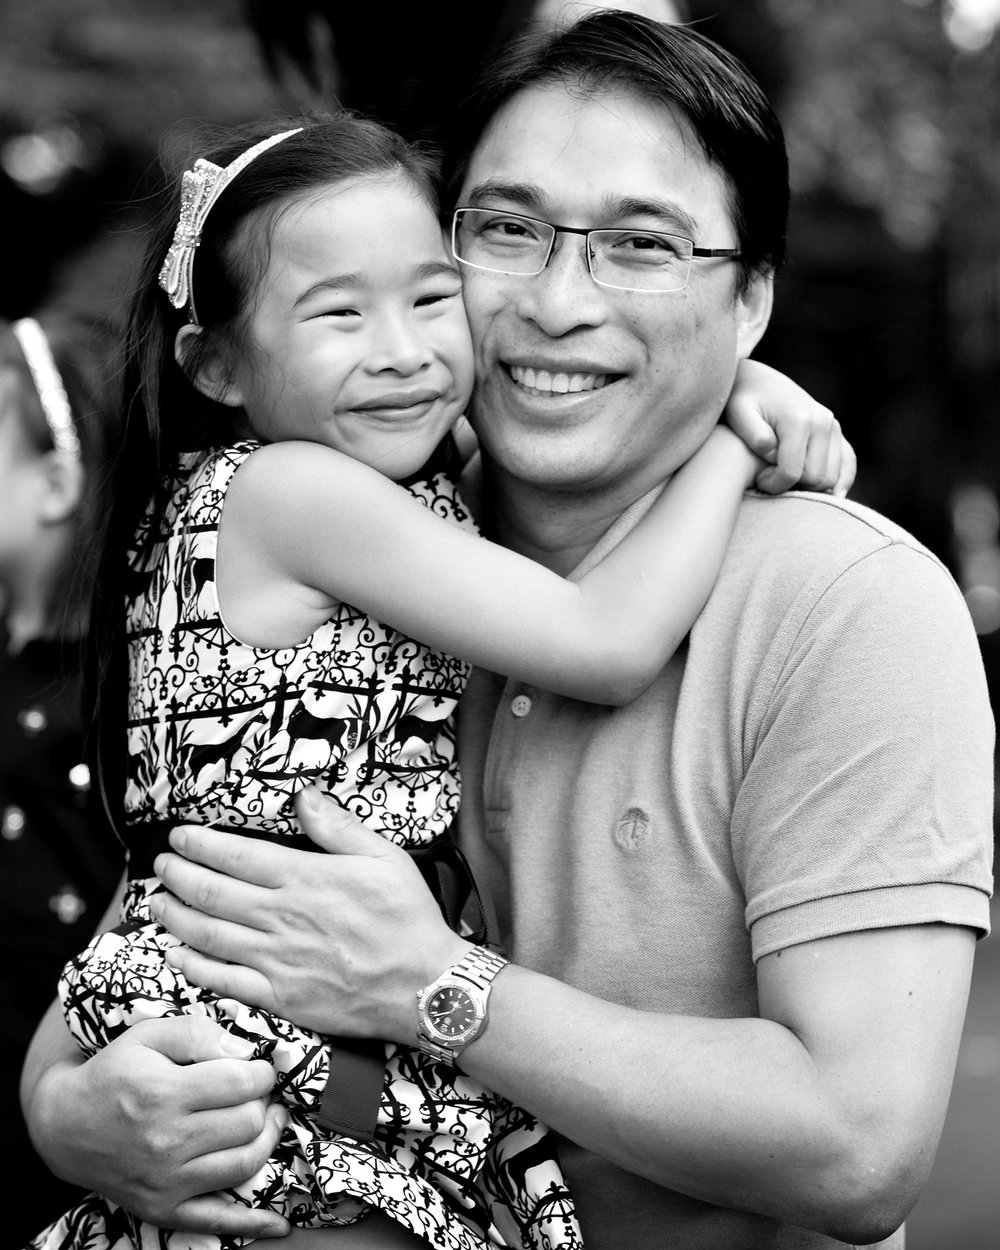 DSC_0138 maddy and daddy BW web.jpg